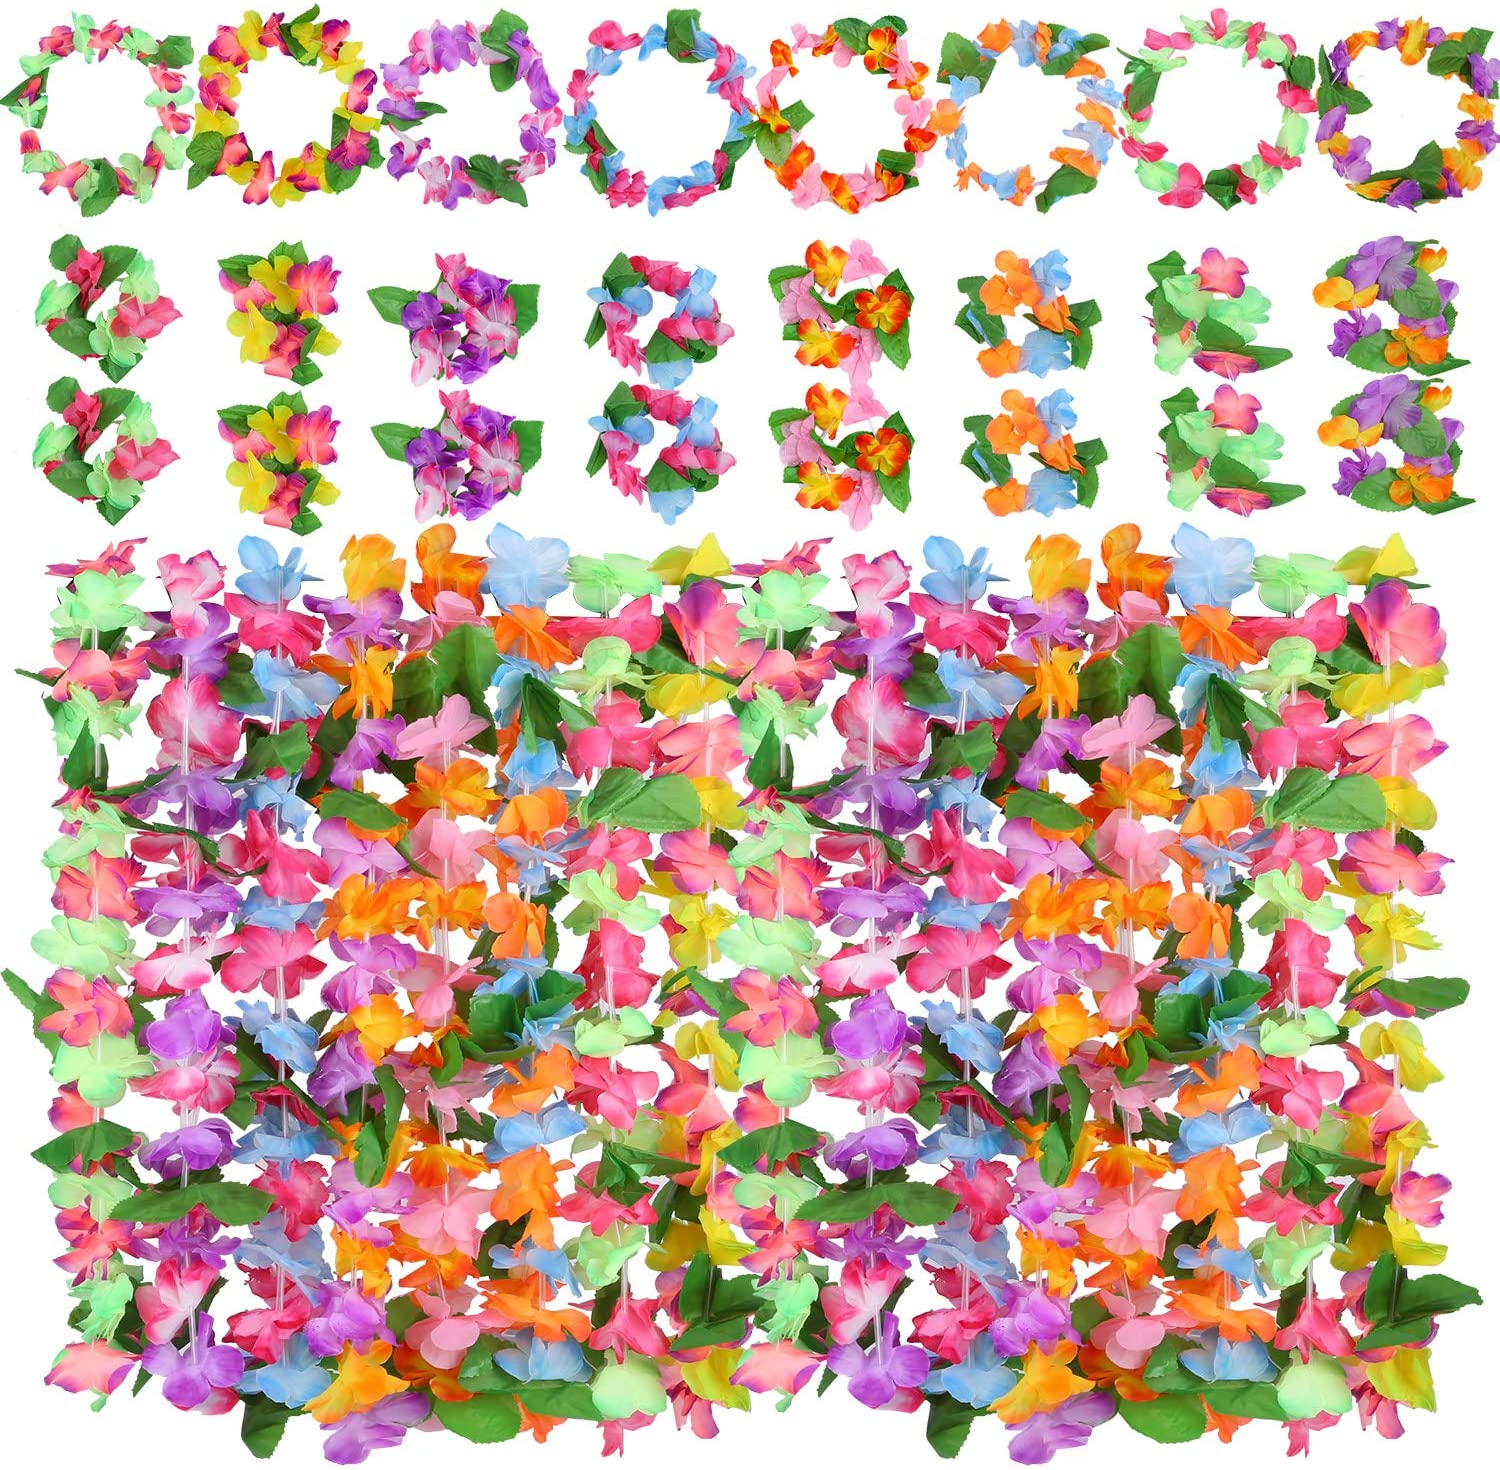 Cooraby 32 Pieces Hawaiian Leis Tropical Hawaiian Garlands with 16 Bracelets 8 Headbands and 8 Necklaces for Luau Party Supplies